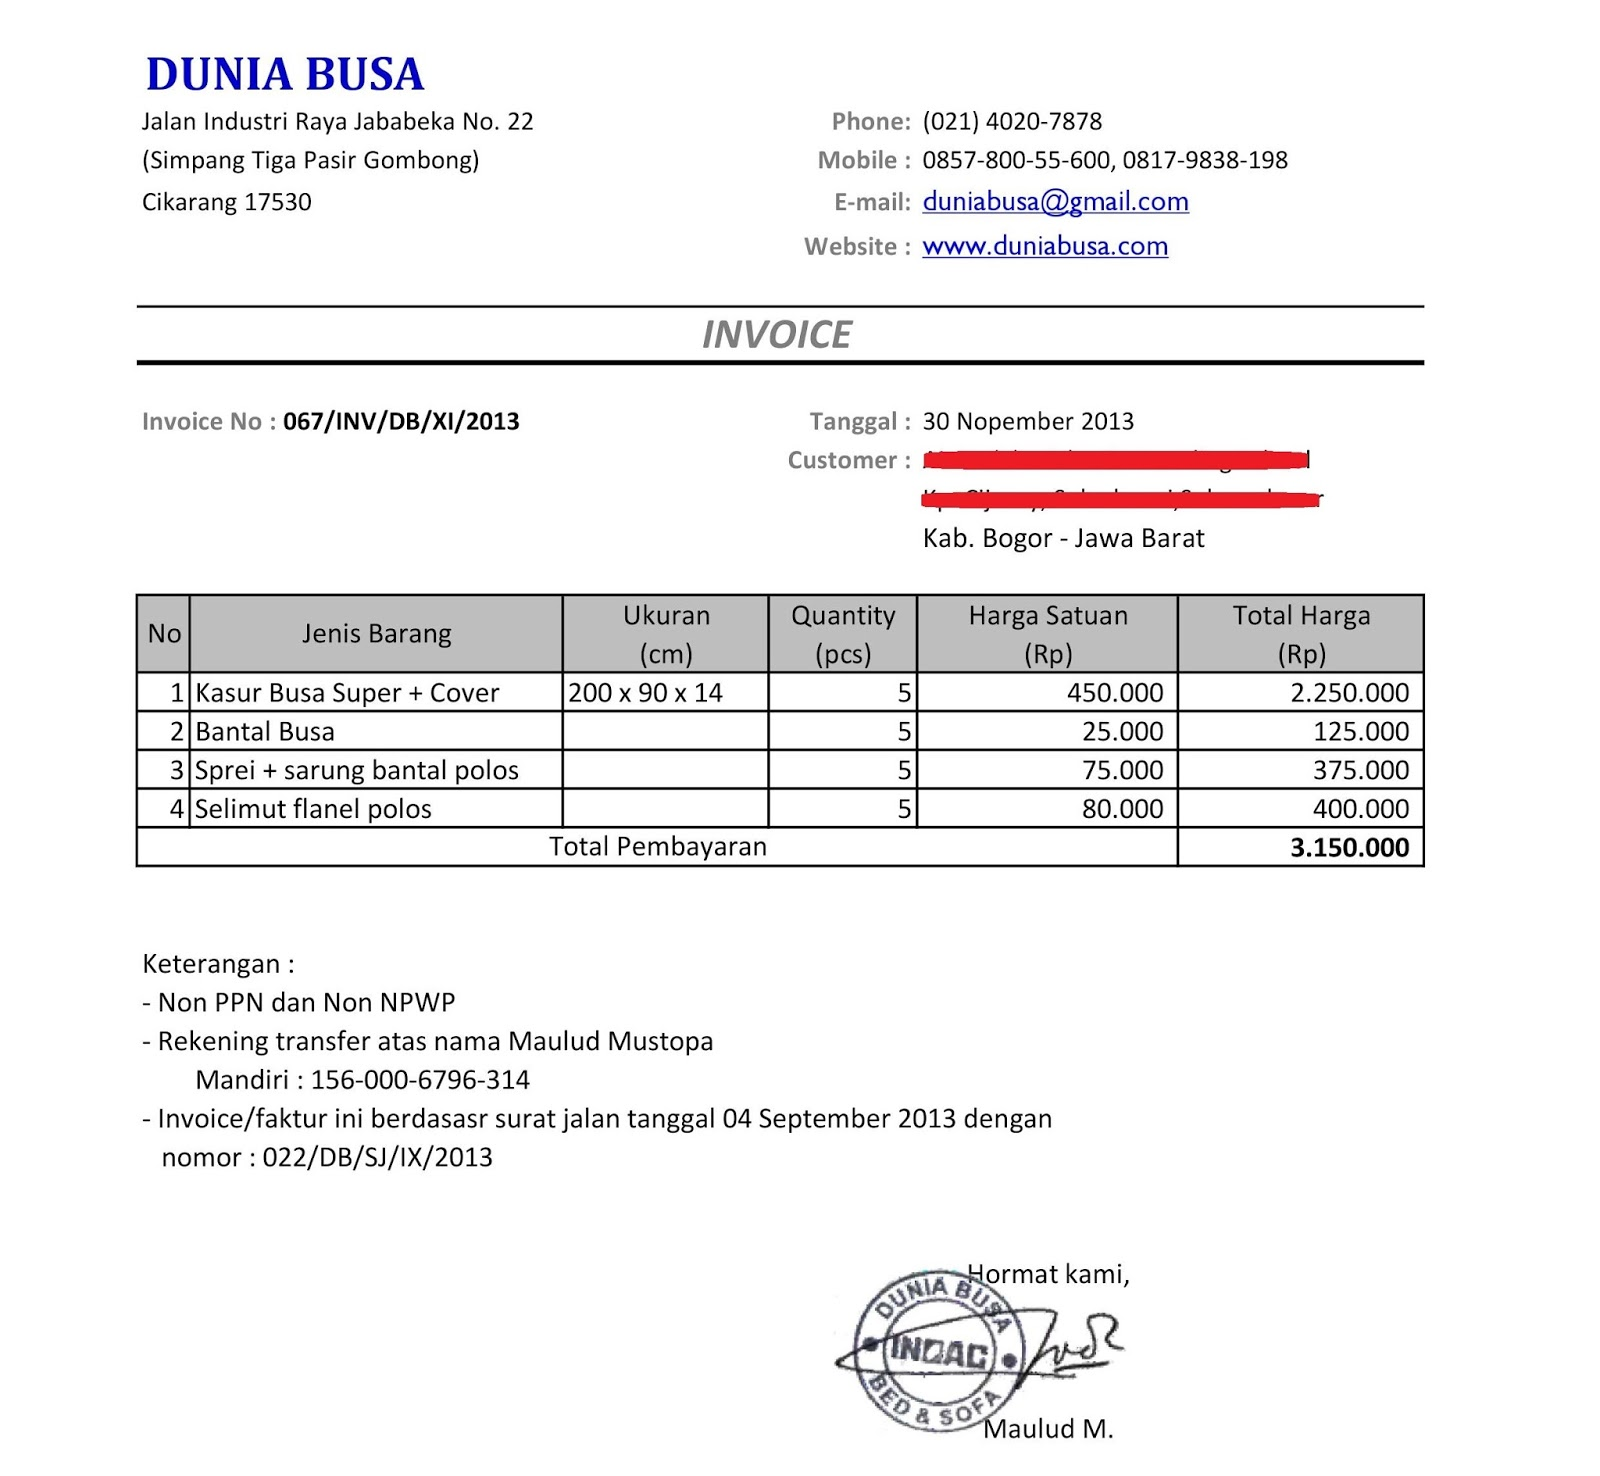 Centralasianshepherdus  Pleasant Free Invoice Online  Create Invoice Online  Invoice Template  With Exciting Contoh Format Invoice Atau Surat Tagihan  Brankas Arsip  Free Invoice Online With Divine Invoice Issued Also Invoicing Api In Addition Invoice Template For Open Office And Invoice Tracking Software Free As Well As Professional Services Invoice Template Free Additionally How To Set Out An Invoice From Sklepco With Centralasianshepherdus  Exciting Free Invoice Online  Create Invoice Online  Invoice Template  With Divine Contoh Format Invoice Atau Surat Tagihan  Brankas Arsip  Free Invoice Online And Pleasant Invoice Issued Also Invoicing Api In Addition Invoice Template For Open Office From Sklepco